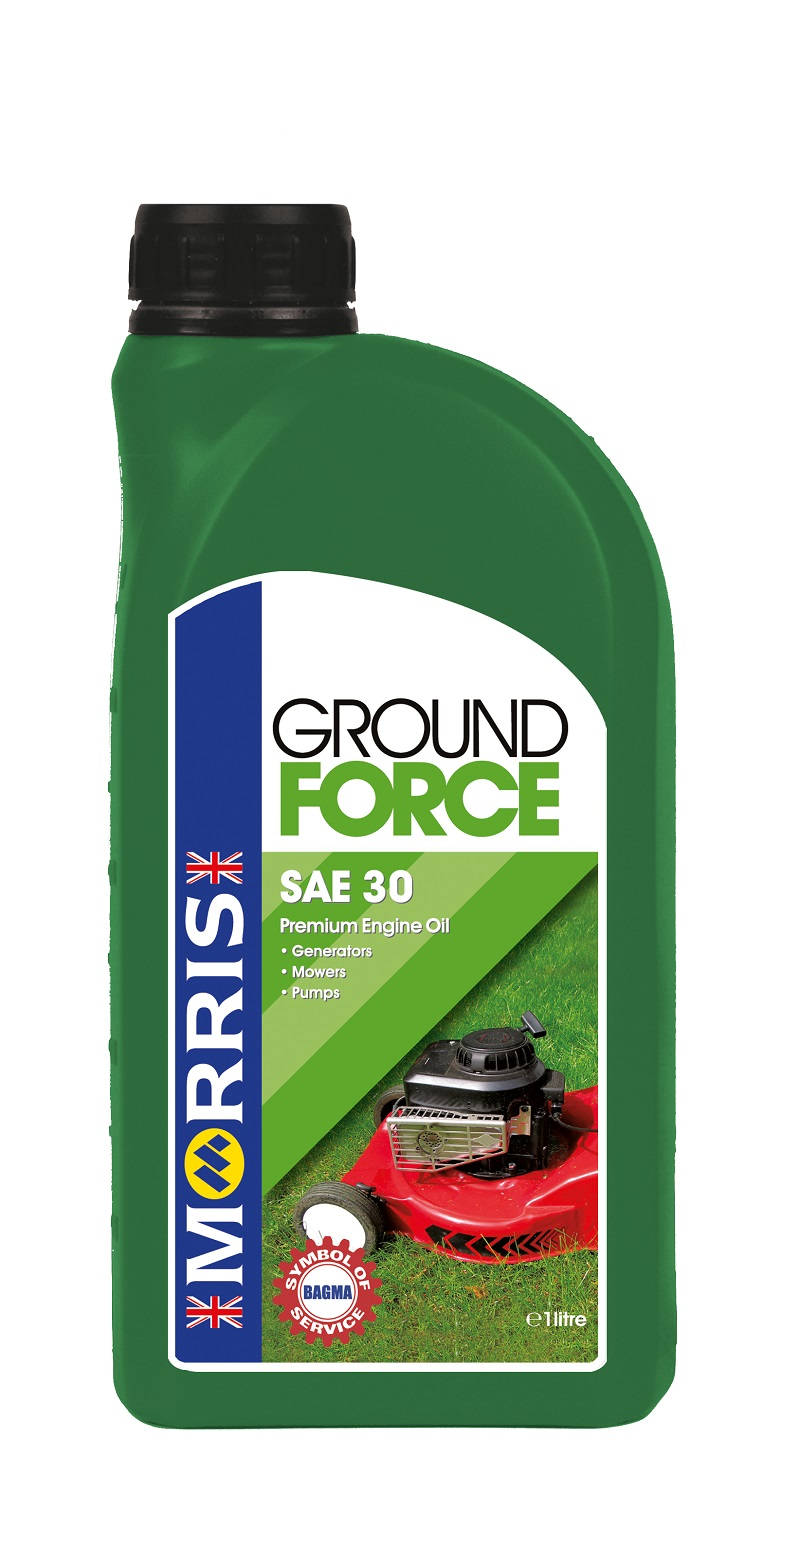 30 Emailoils Contact Usco Ltd Mail: Ground Force SAE 30 Engine Oil